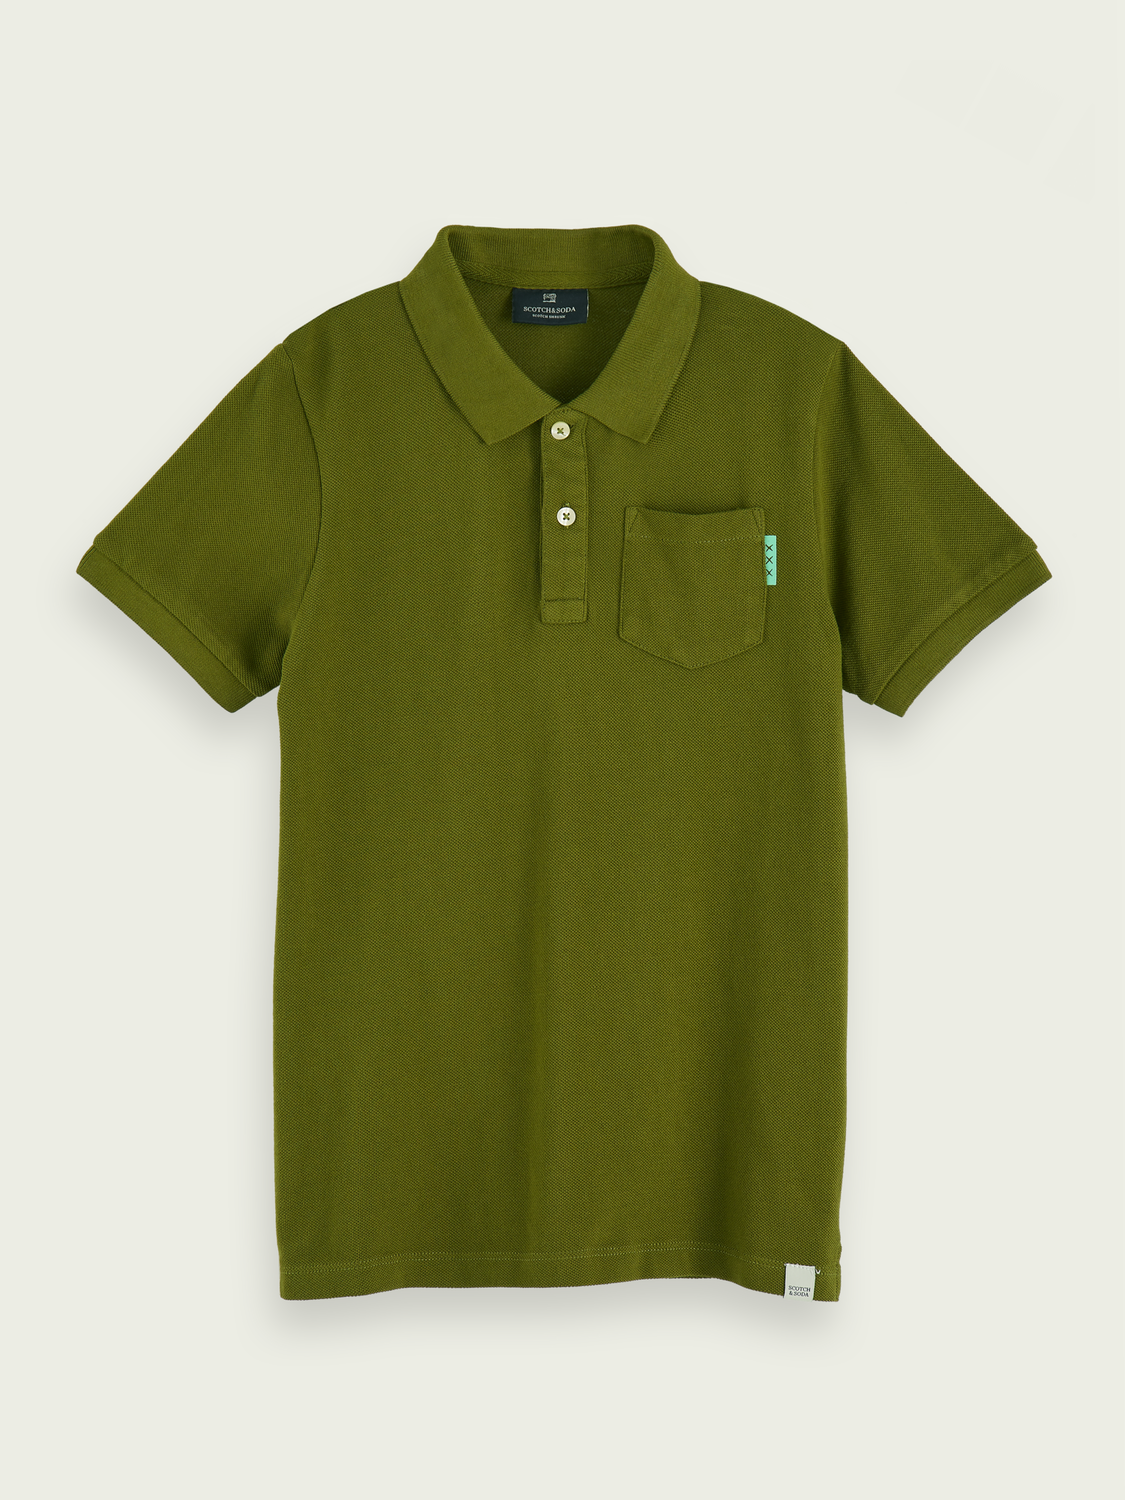 Boys 100% cotton short sleeve pocket polo shirt